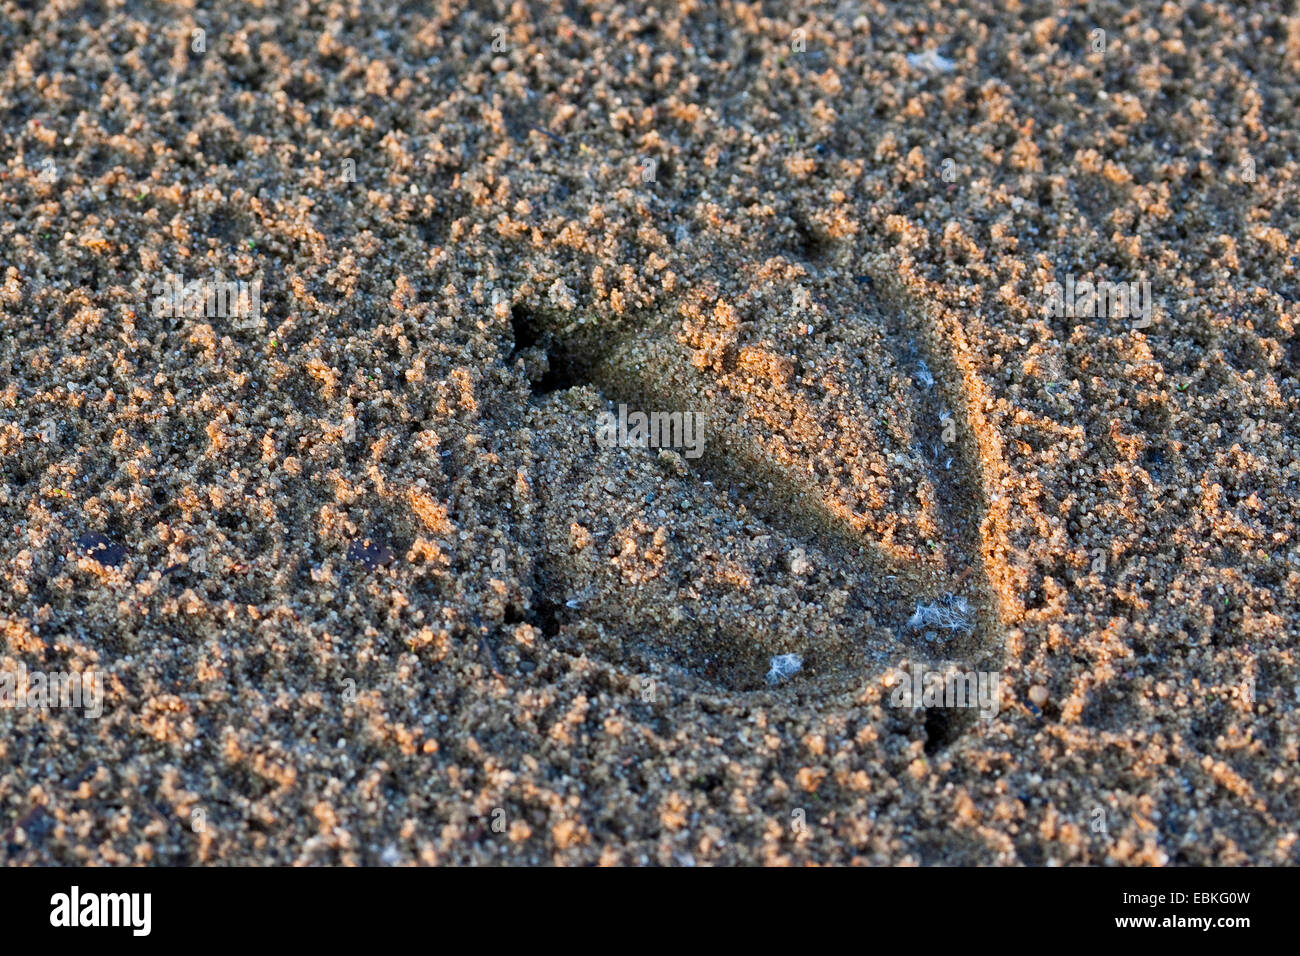 single  footprint of a duck in the mud, Germany - Stock Image